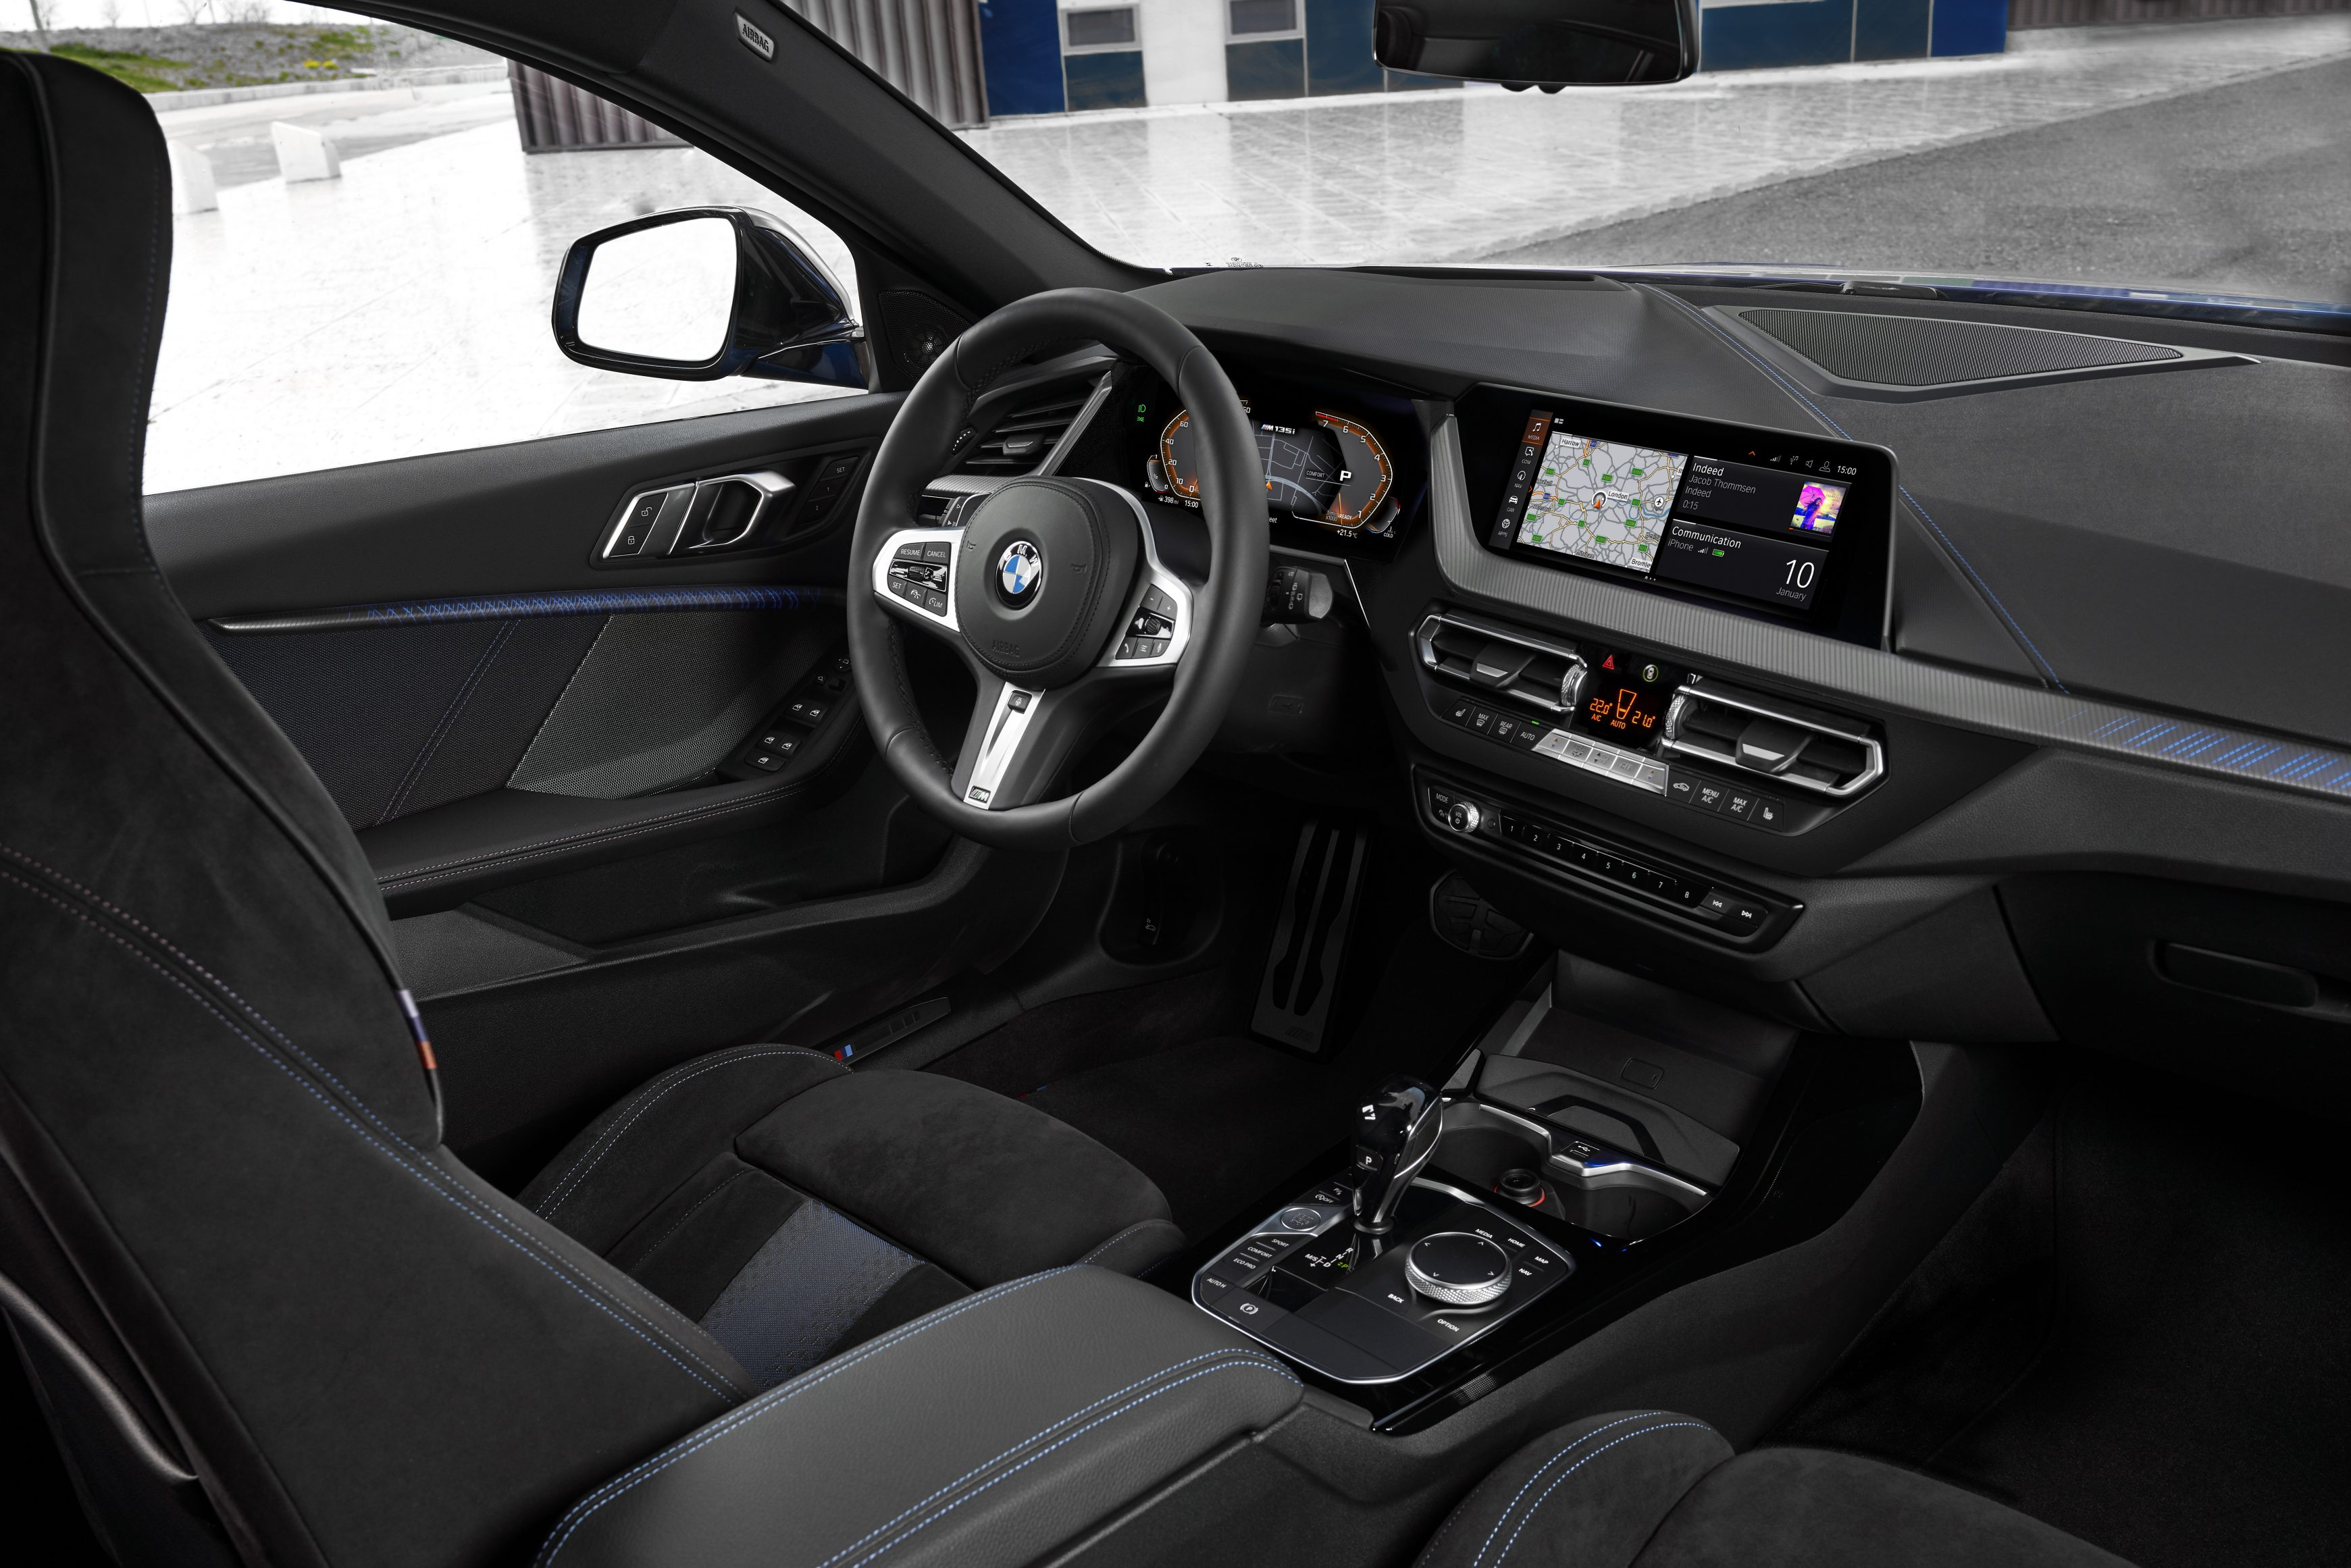 The all new BMW 1 Series cabin